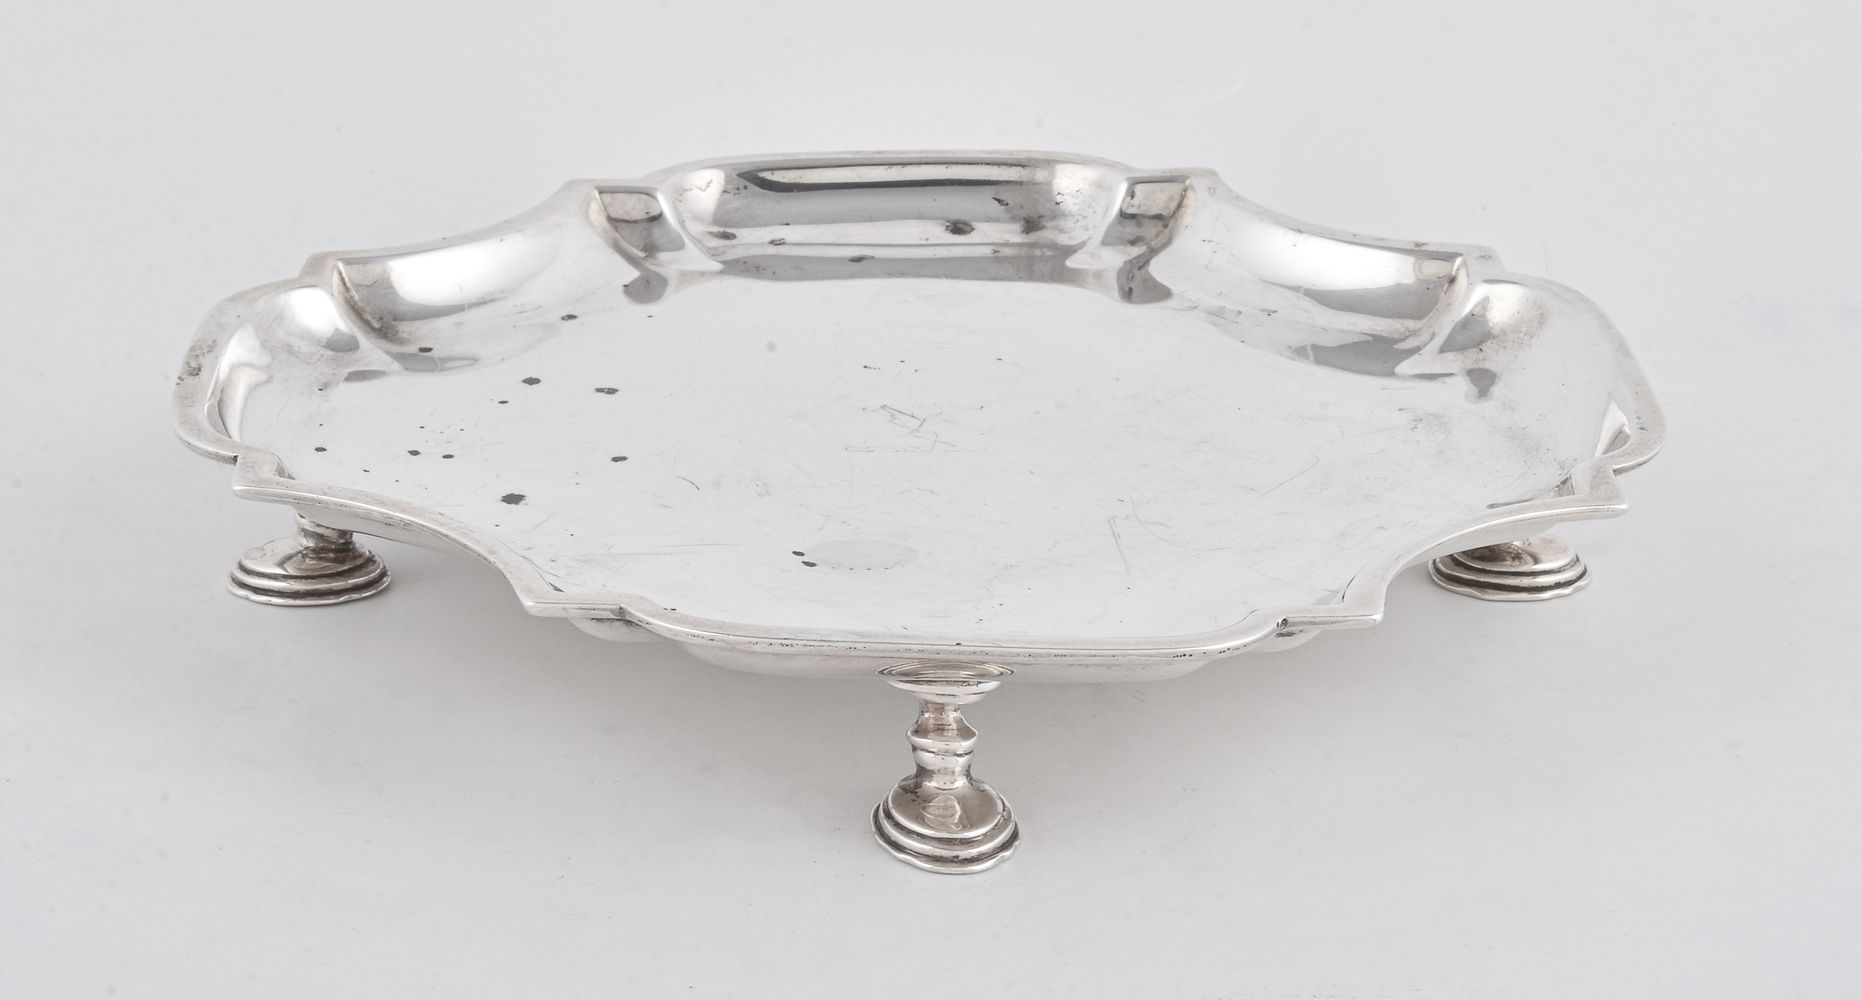 Lot 683 - A silver waiter by William Comyns & Sons